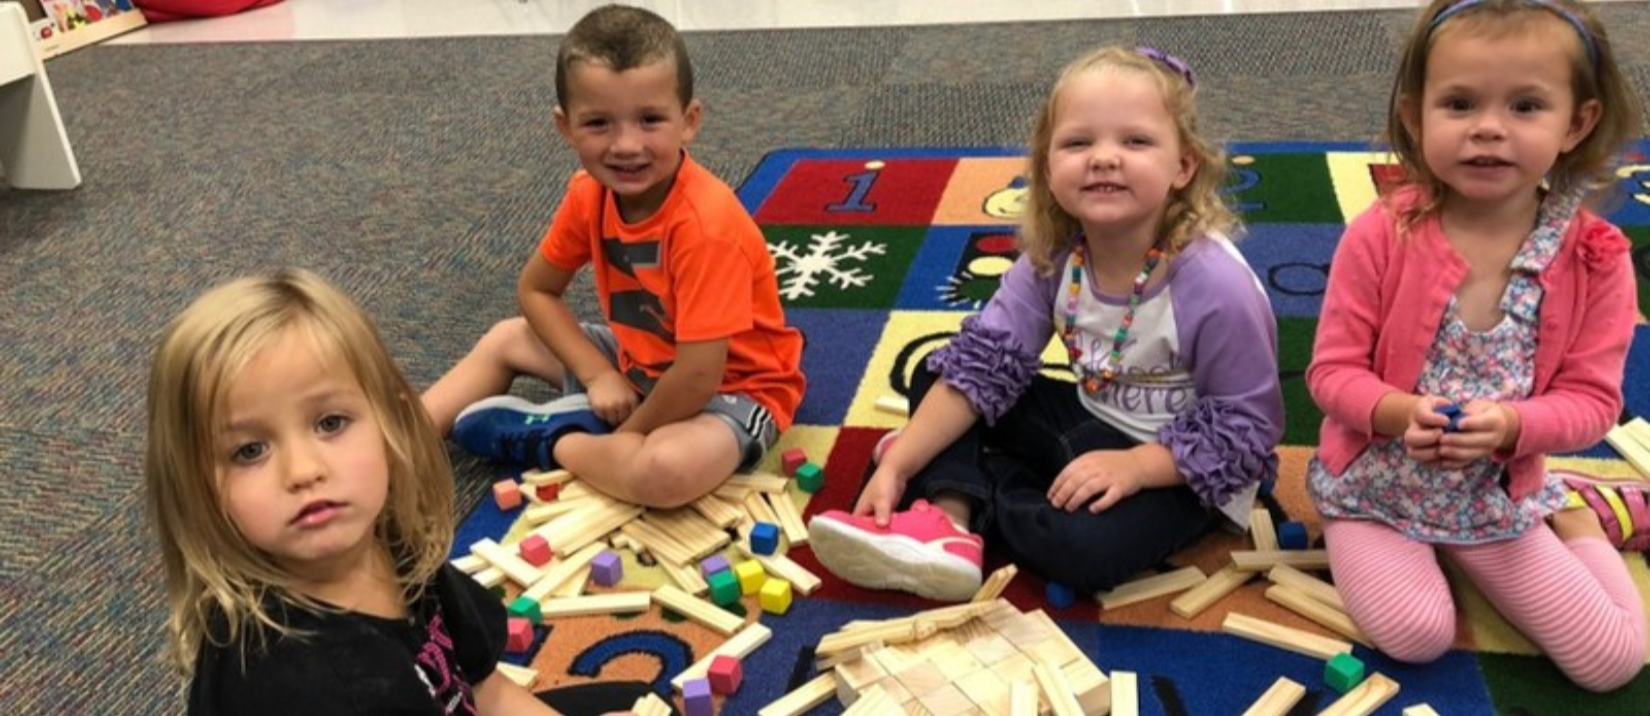 photo of students playing with blocks